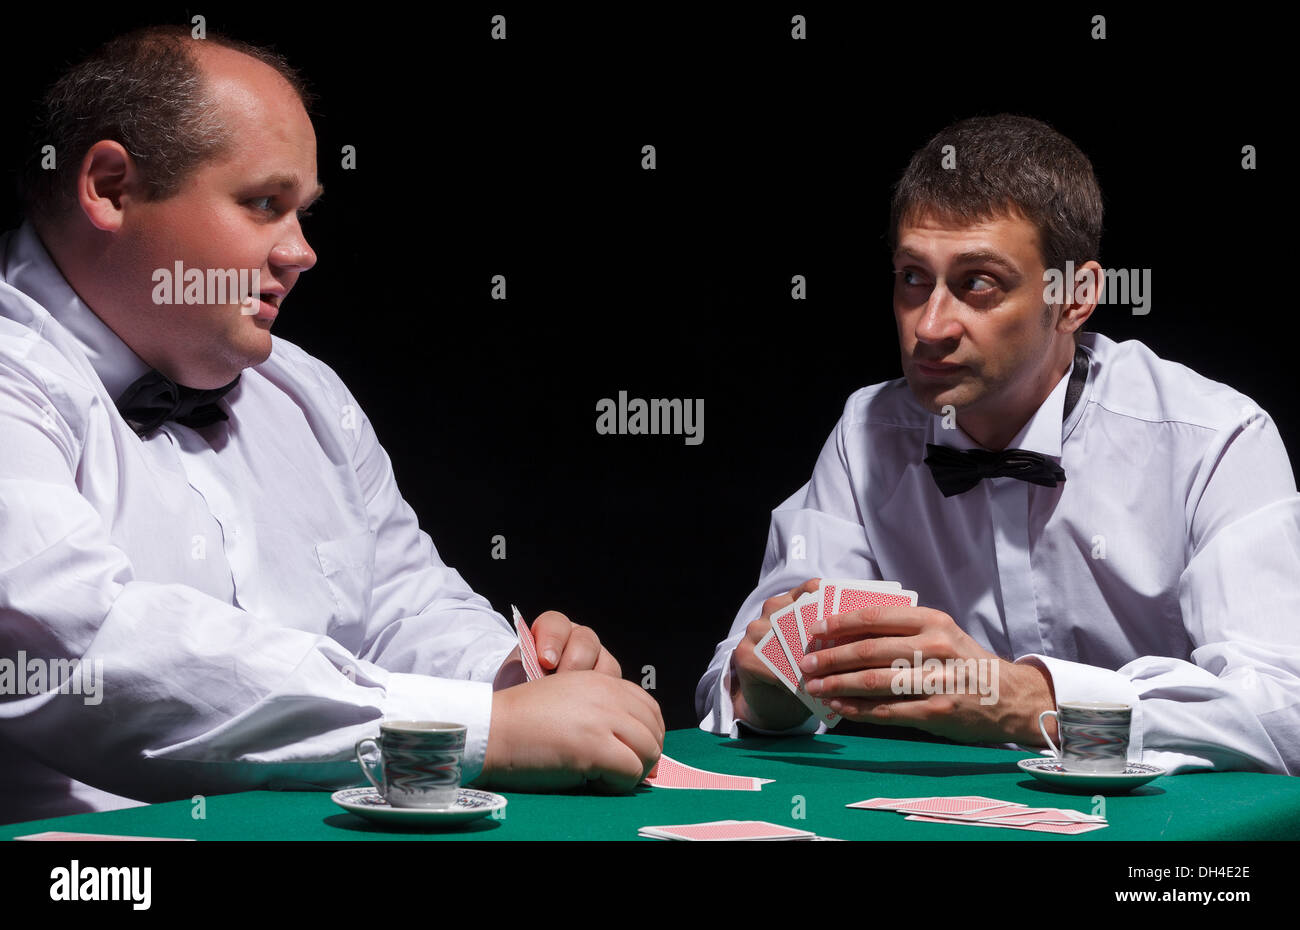 Two gentlemen in white shirts, playing cards - Stock Image